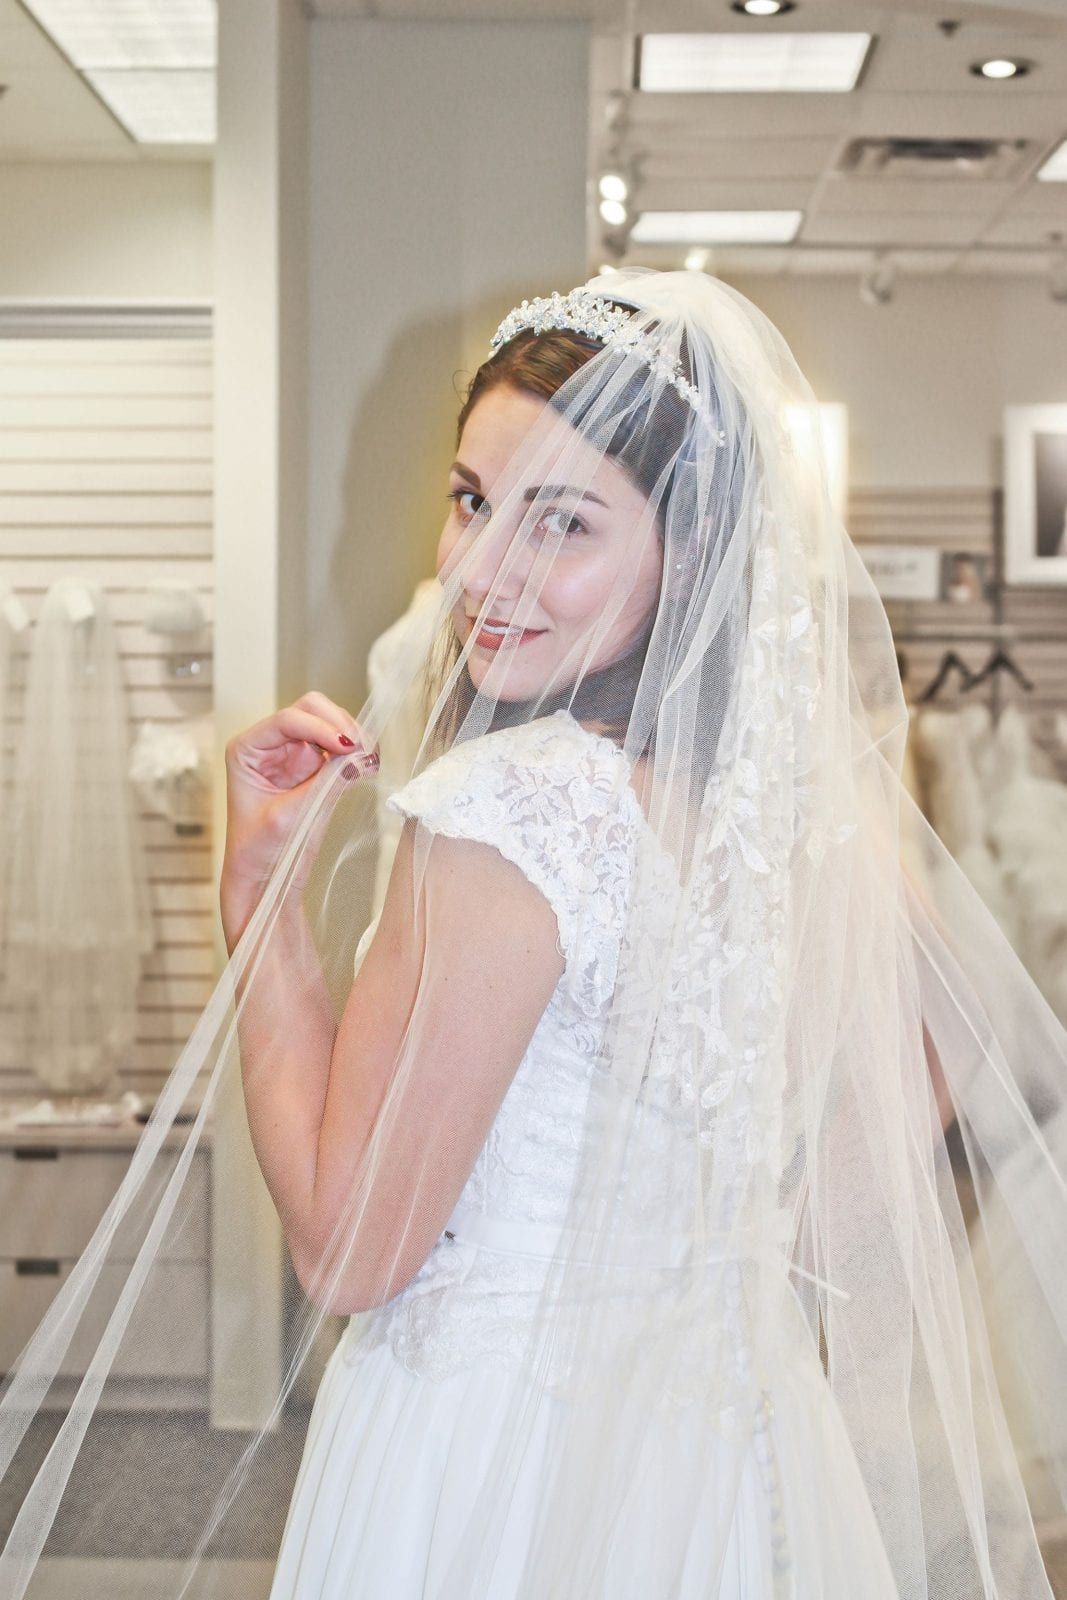 This is a close up of me looking back through a veil wearing a beautiful wedding dress from David's Bridal.